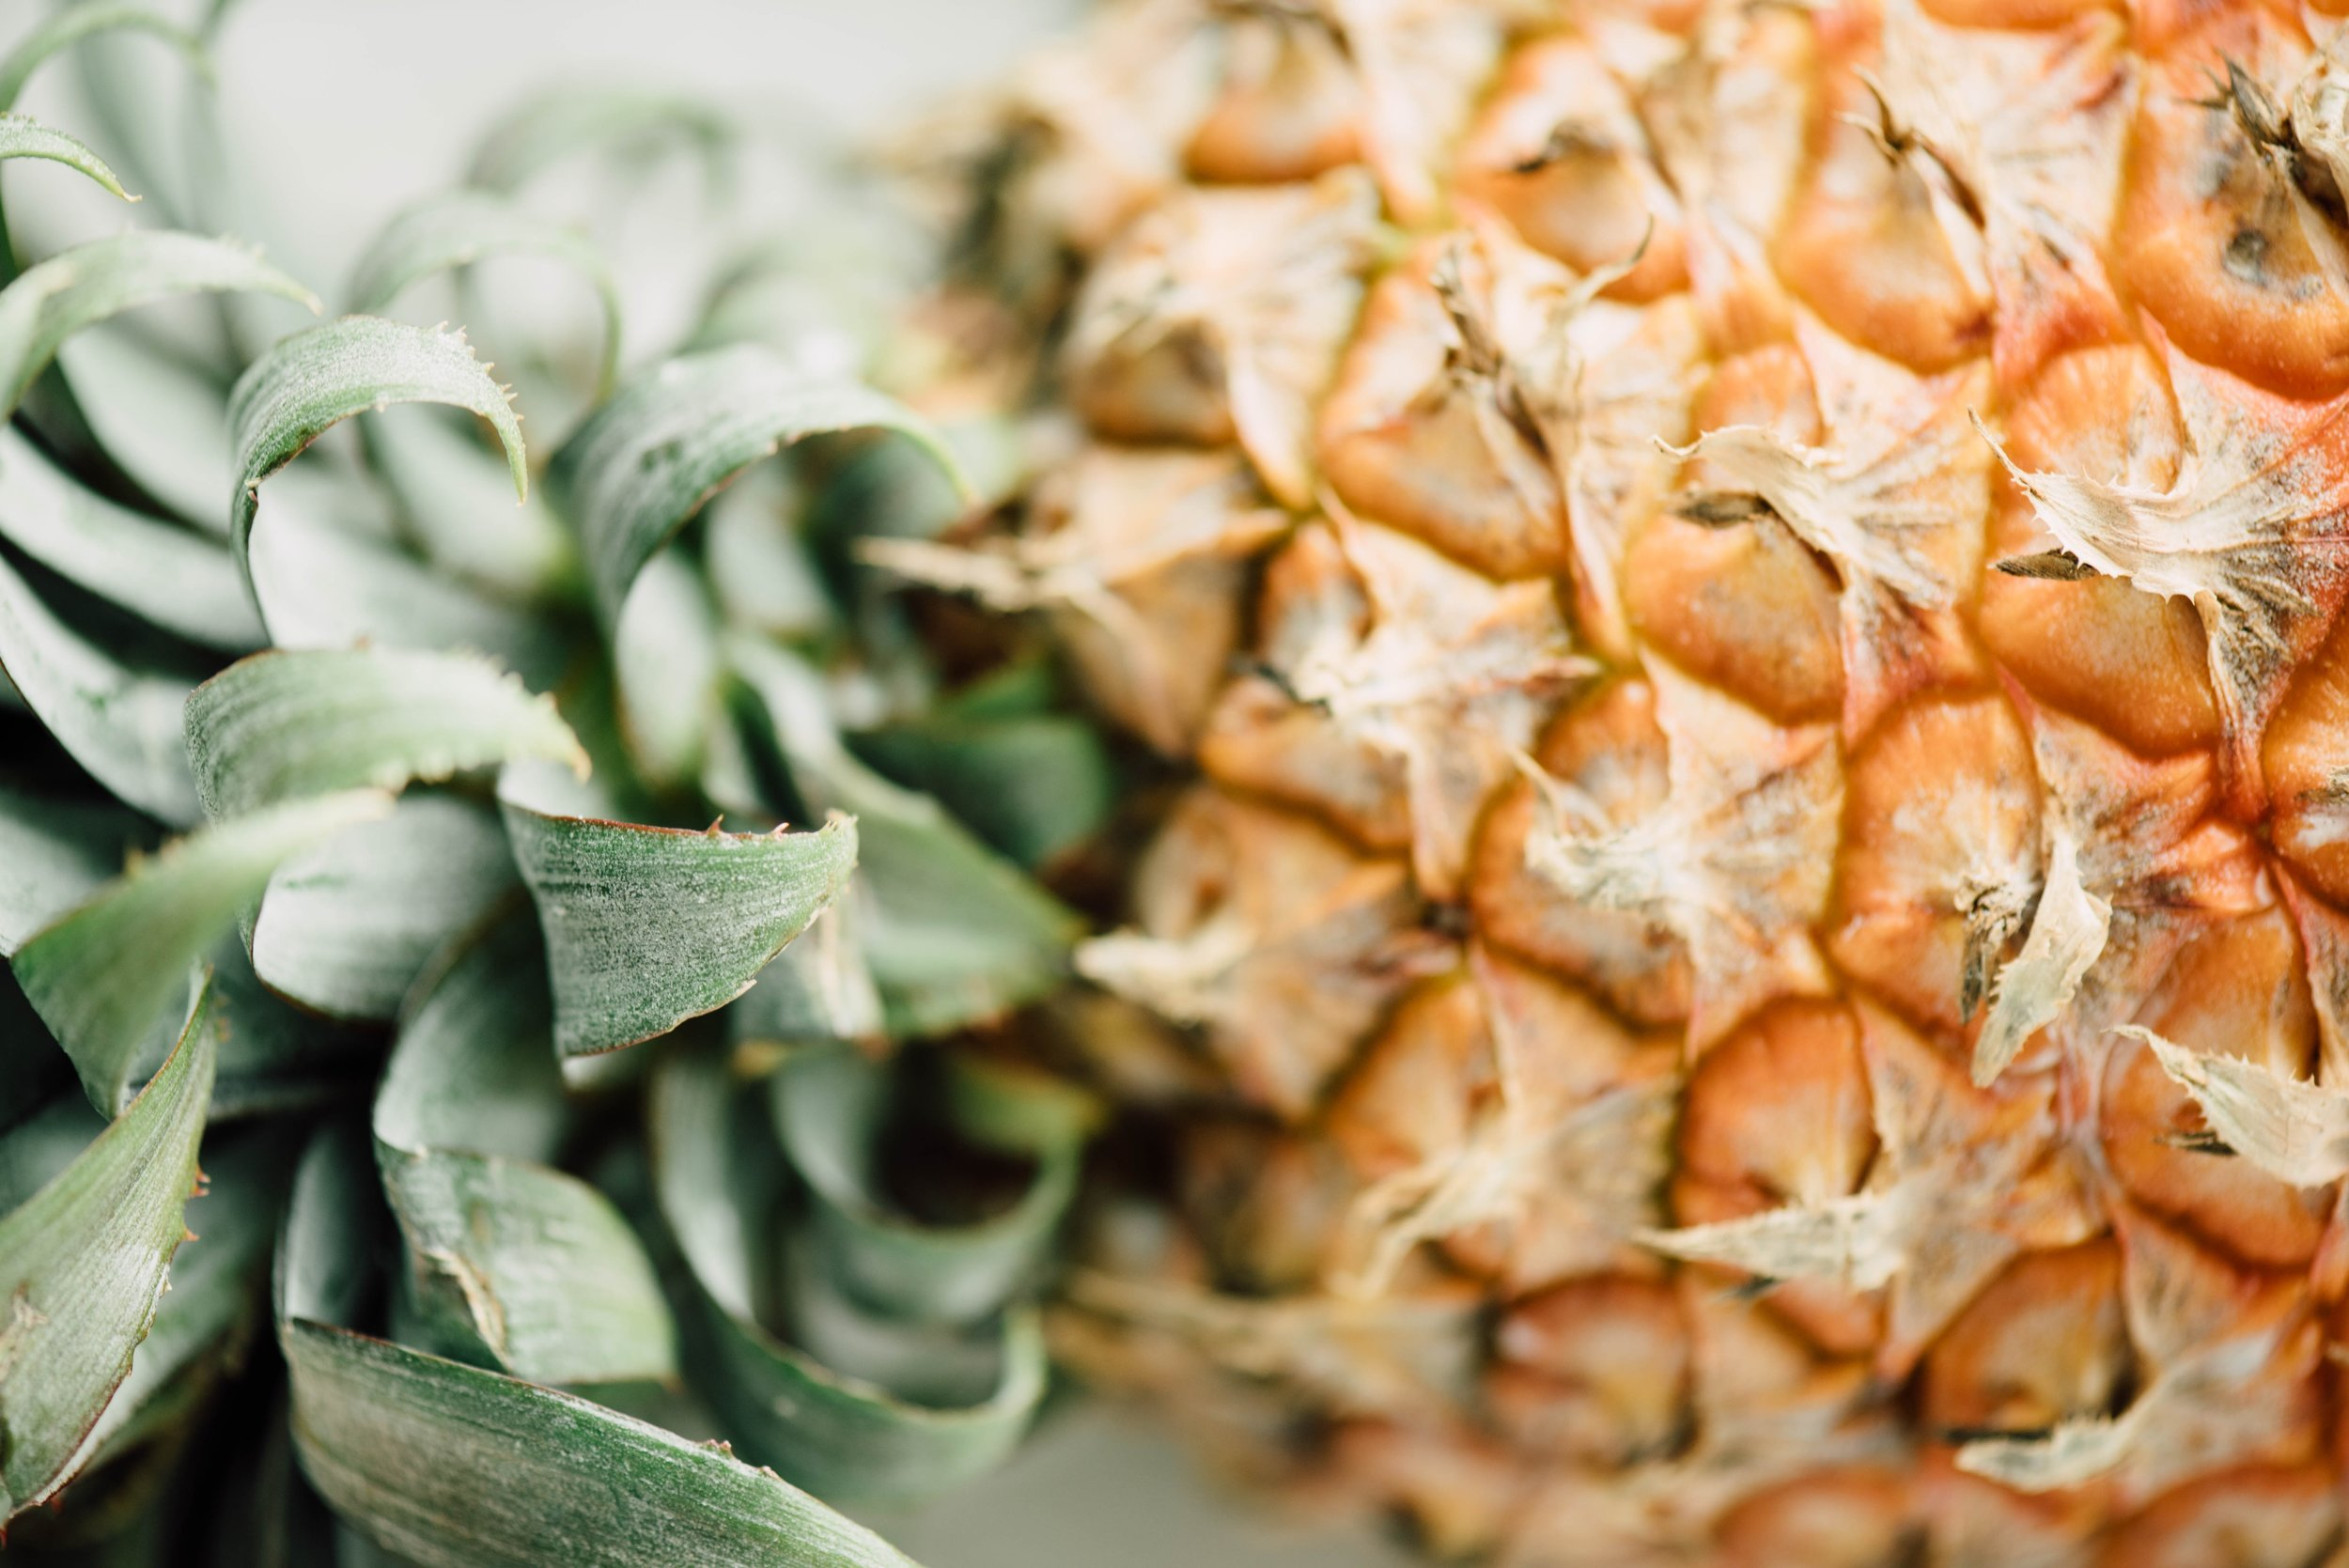 Did you know that pineapples are a symbol of warmth and welcome? They're also great for digestion,reducing inflammation, and clear skin!